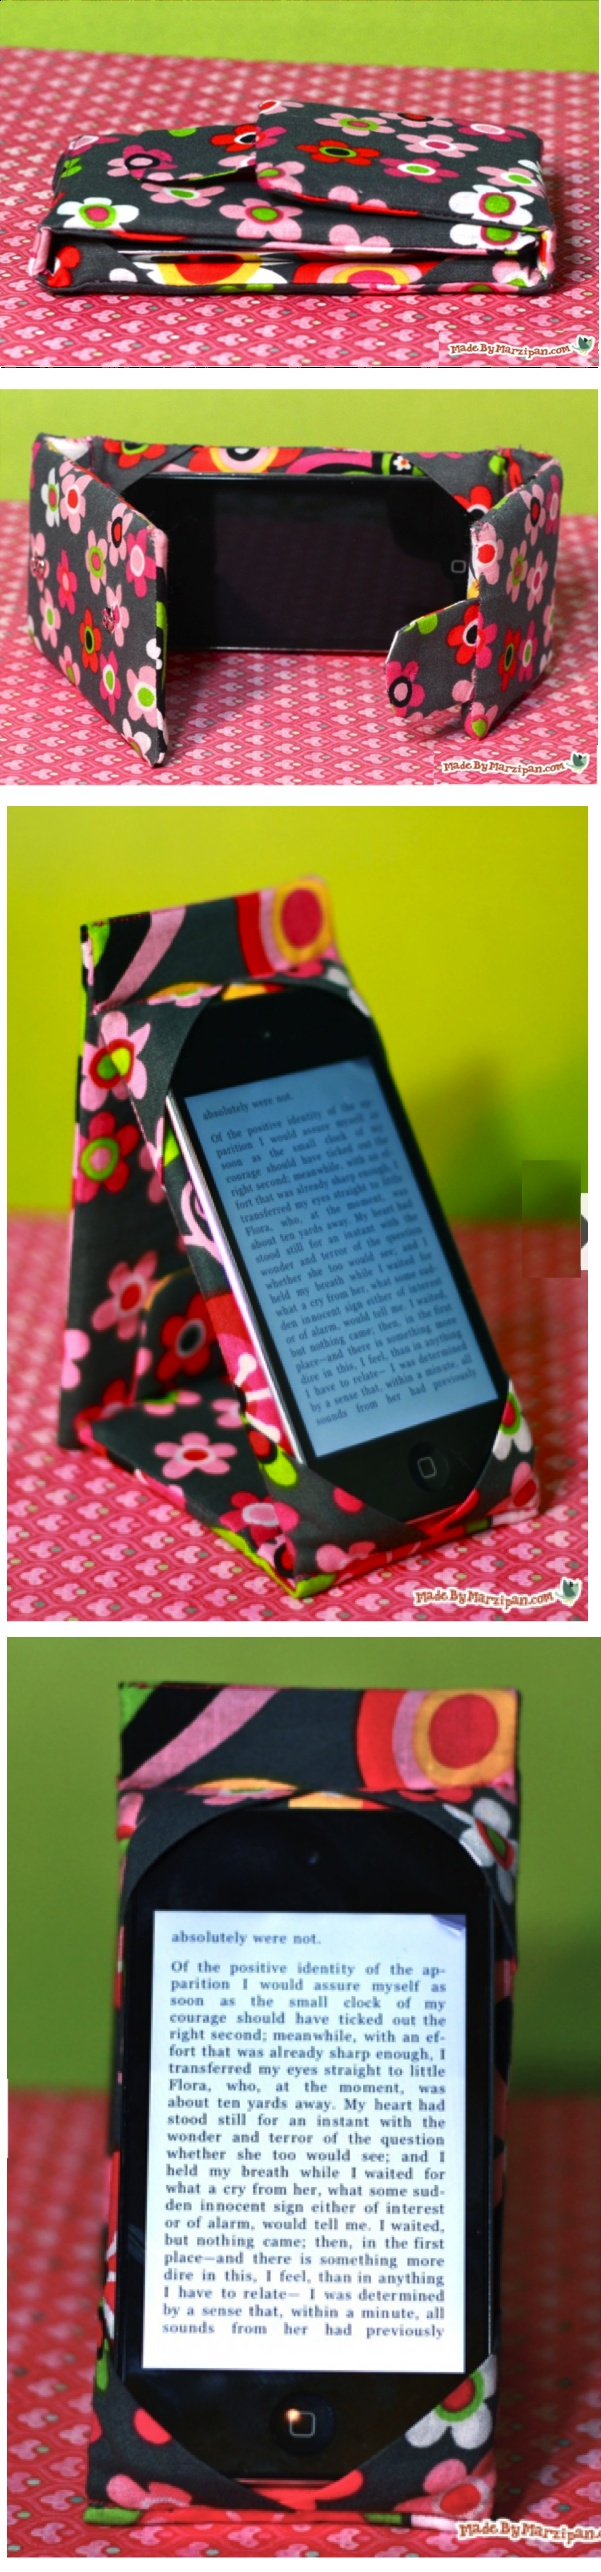 Love this idea for an ipad or iphone cover.  These would be cute with Riley Blake fabric! Great video tutorial by Made by Marzipan